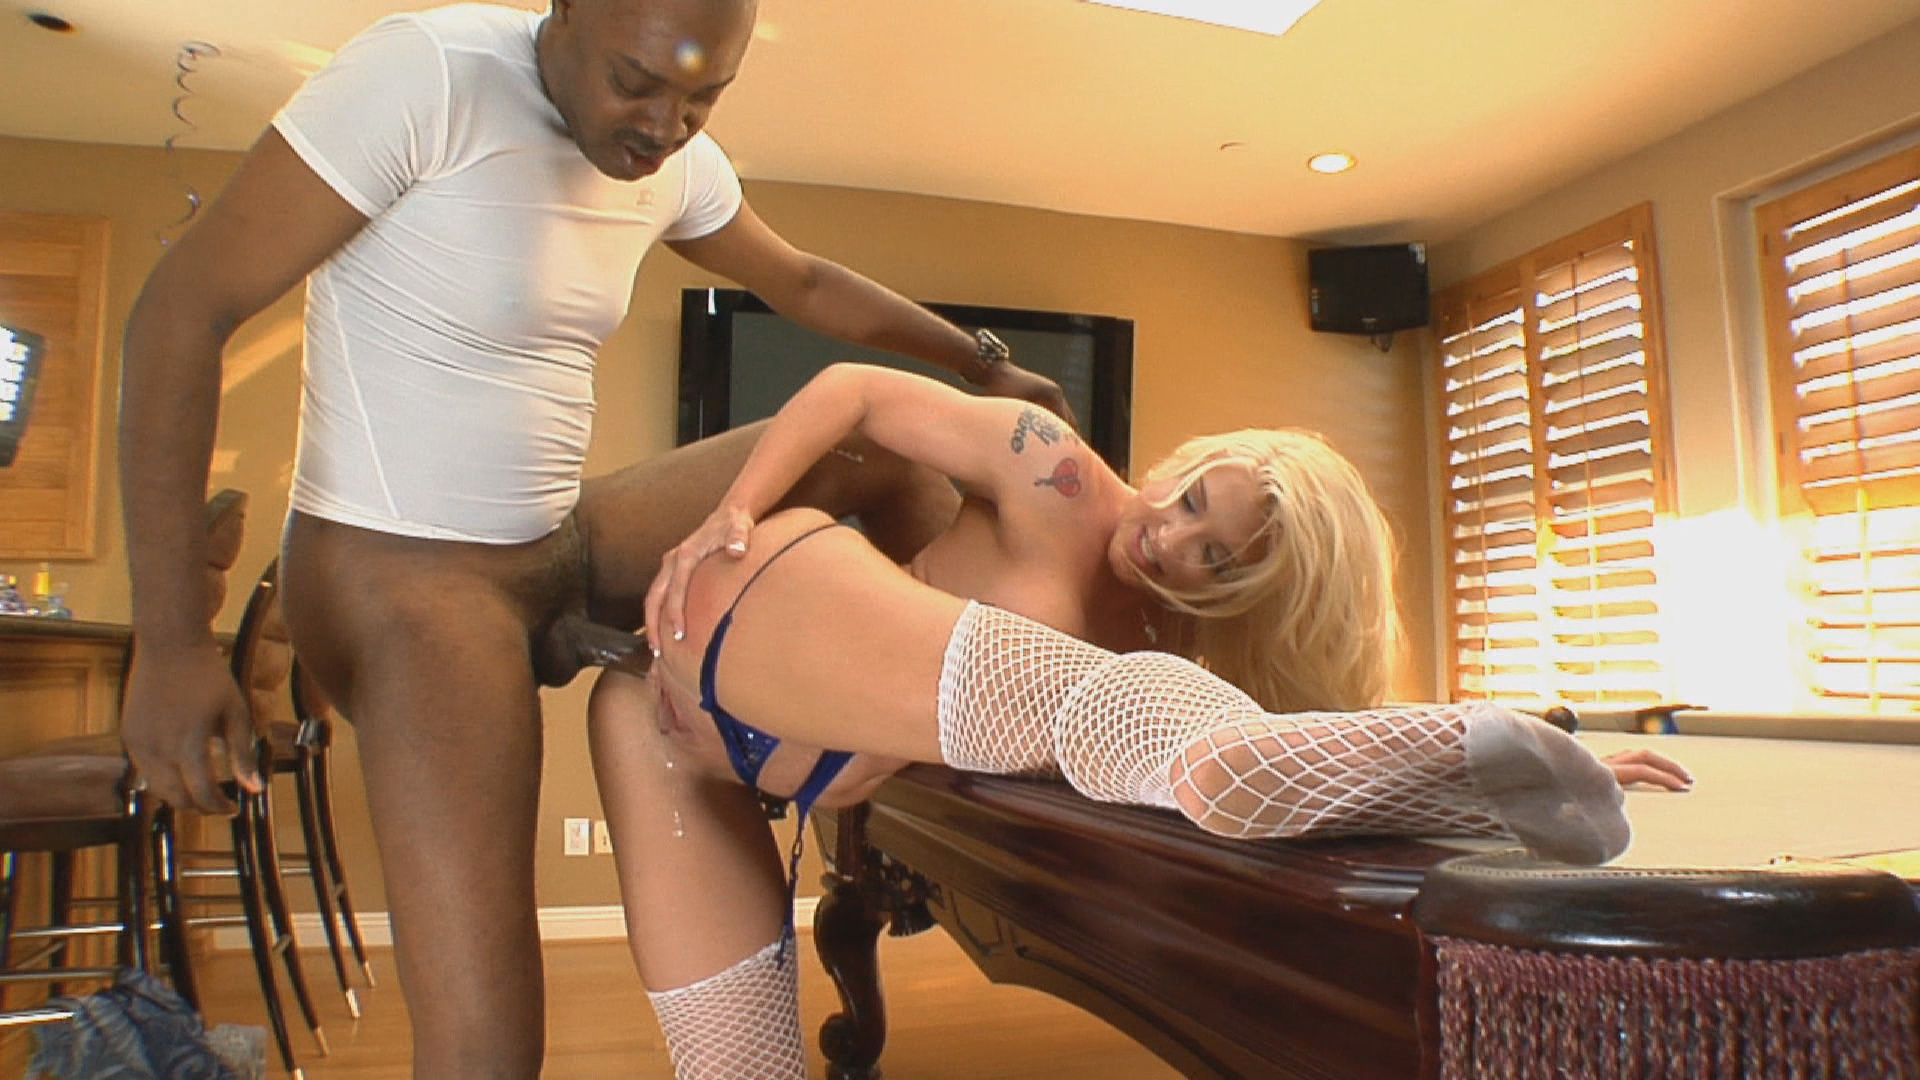 Anal Size My Wife 5 Xvideos176903